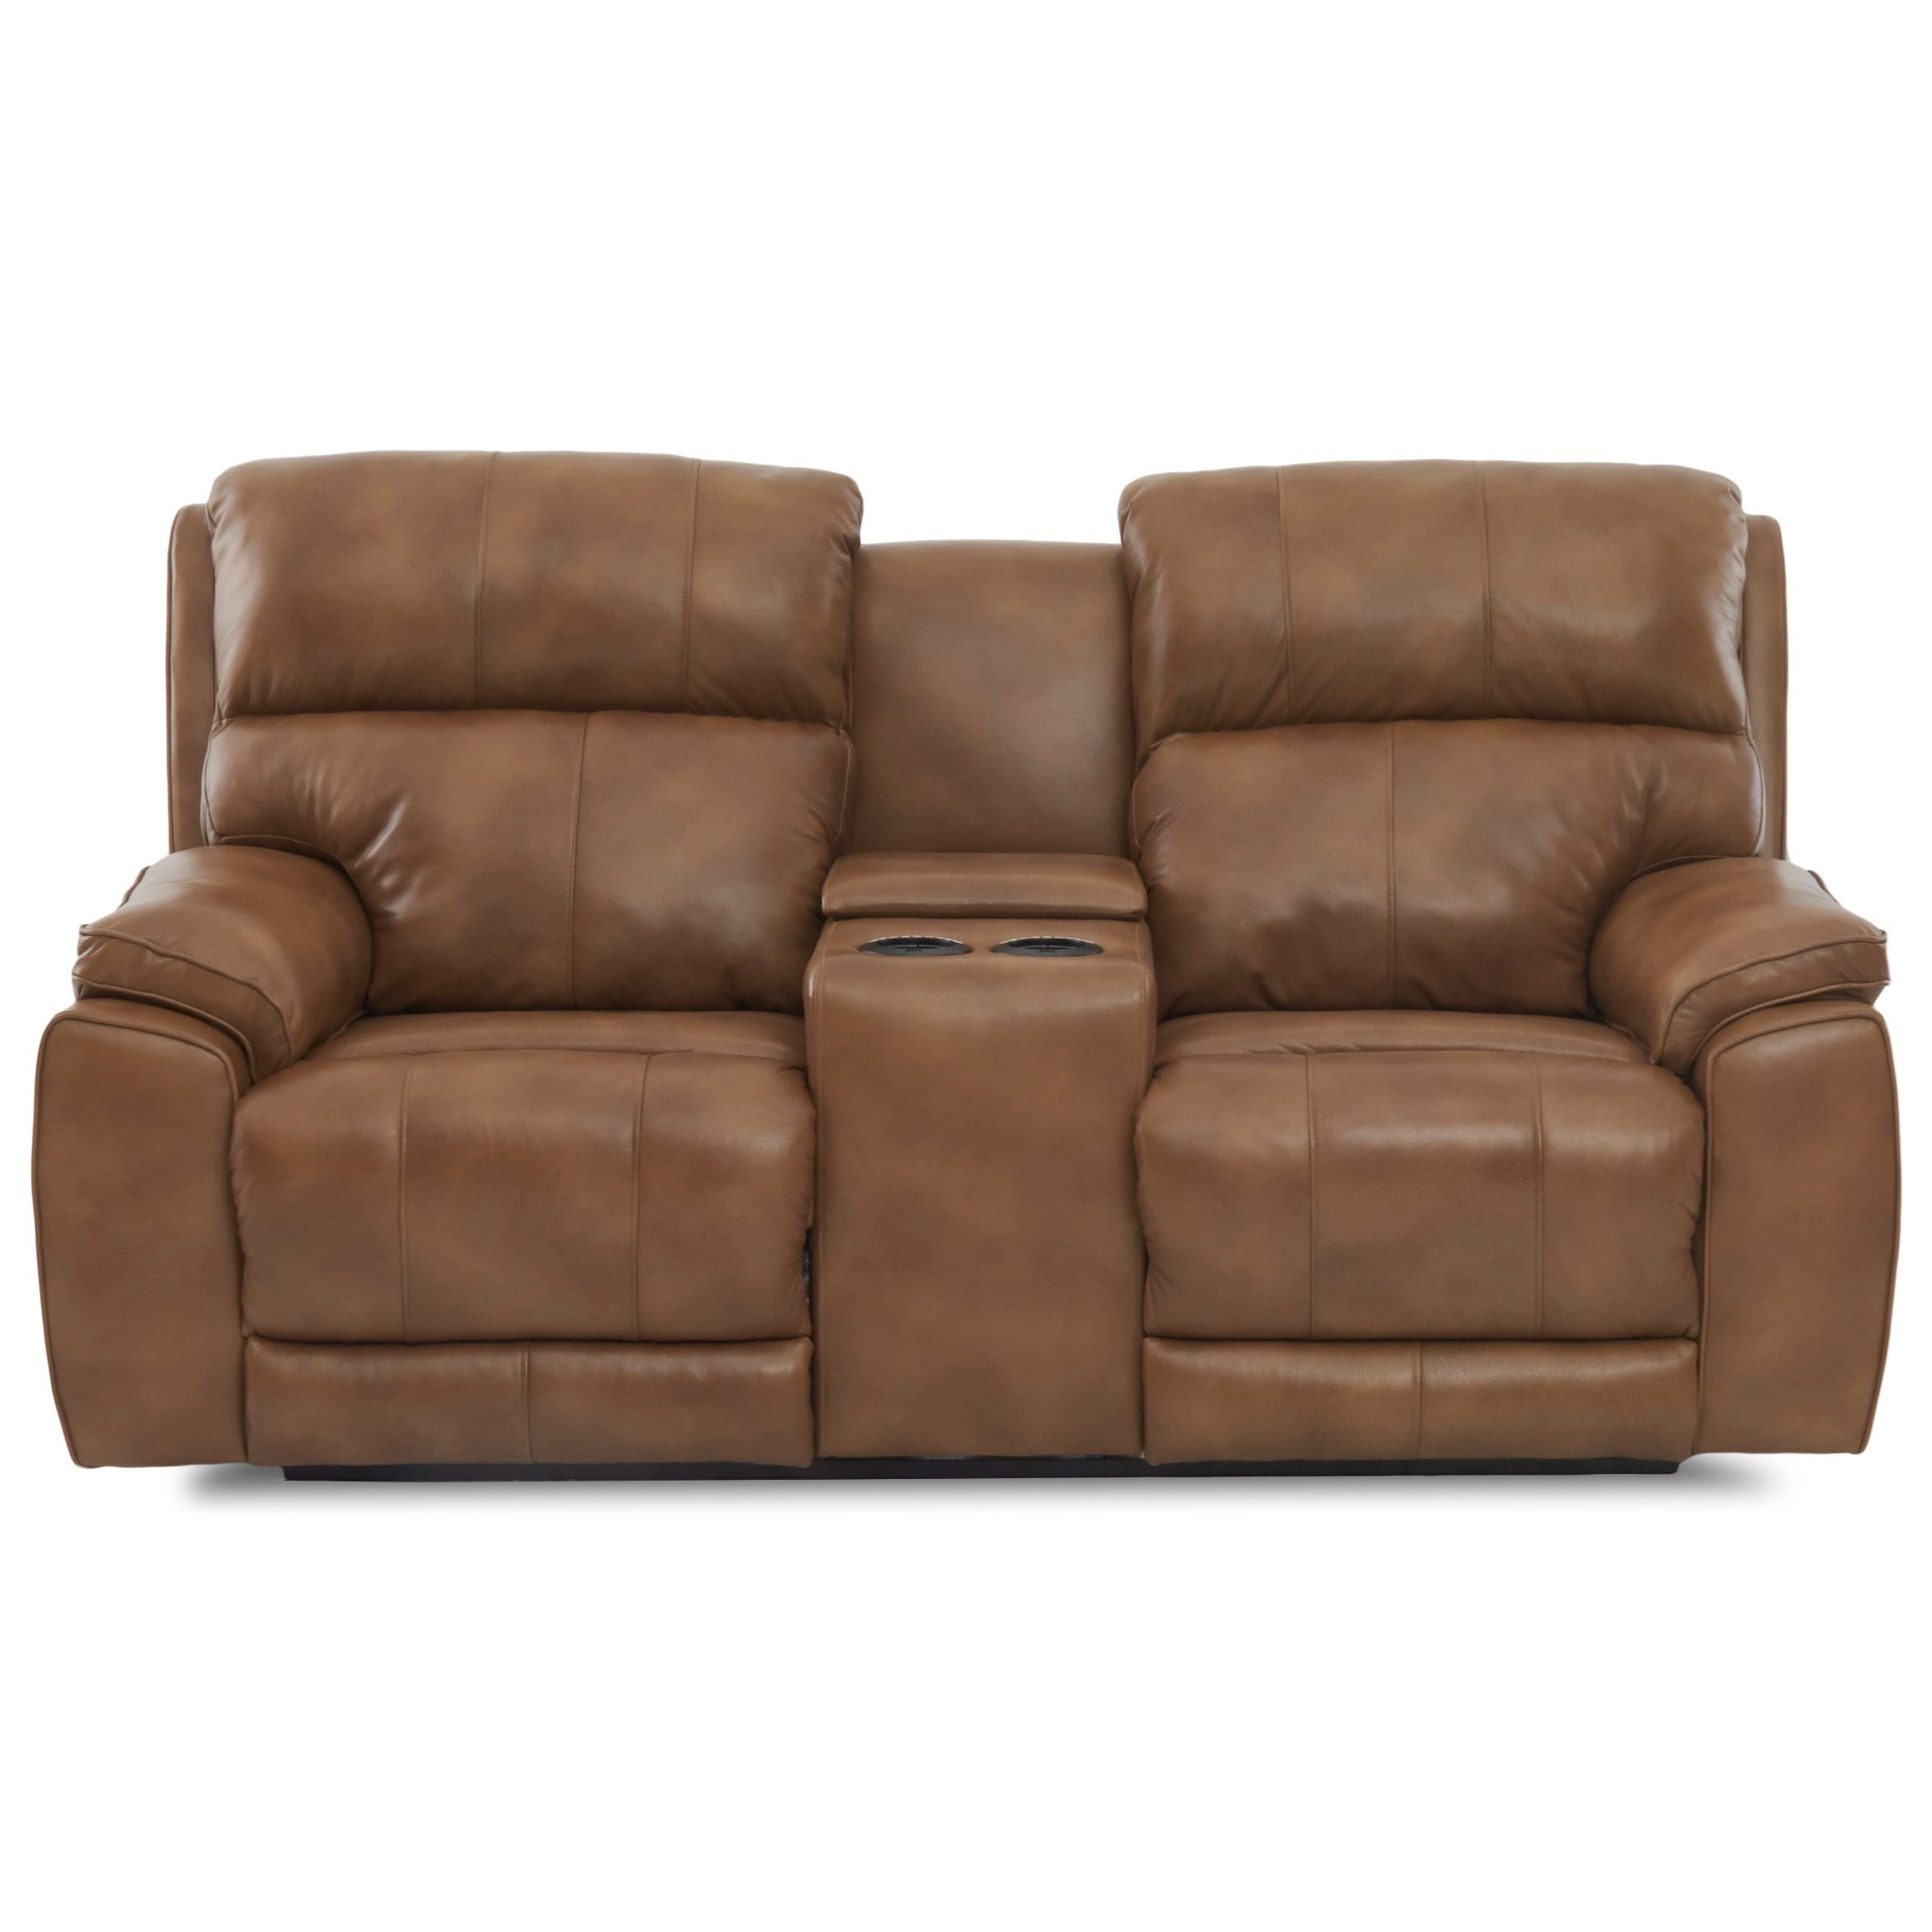 Power Reclining Console Loveseat with Power Head/Lumbar and USB Charging Ports